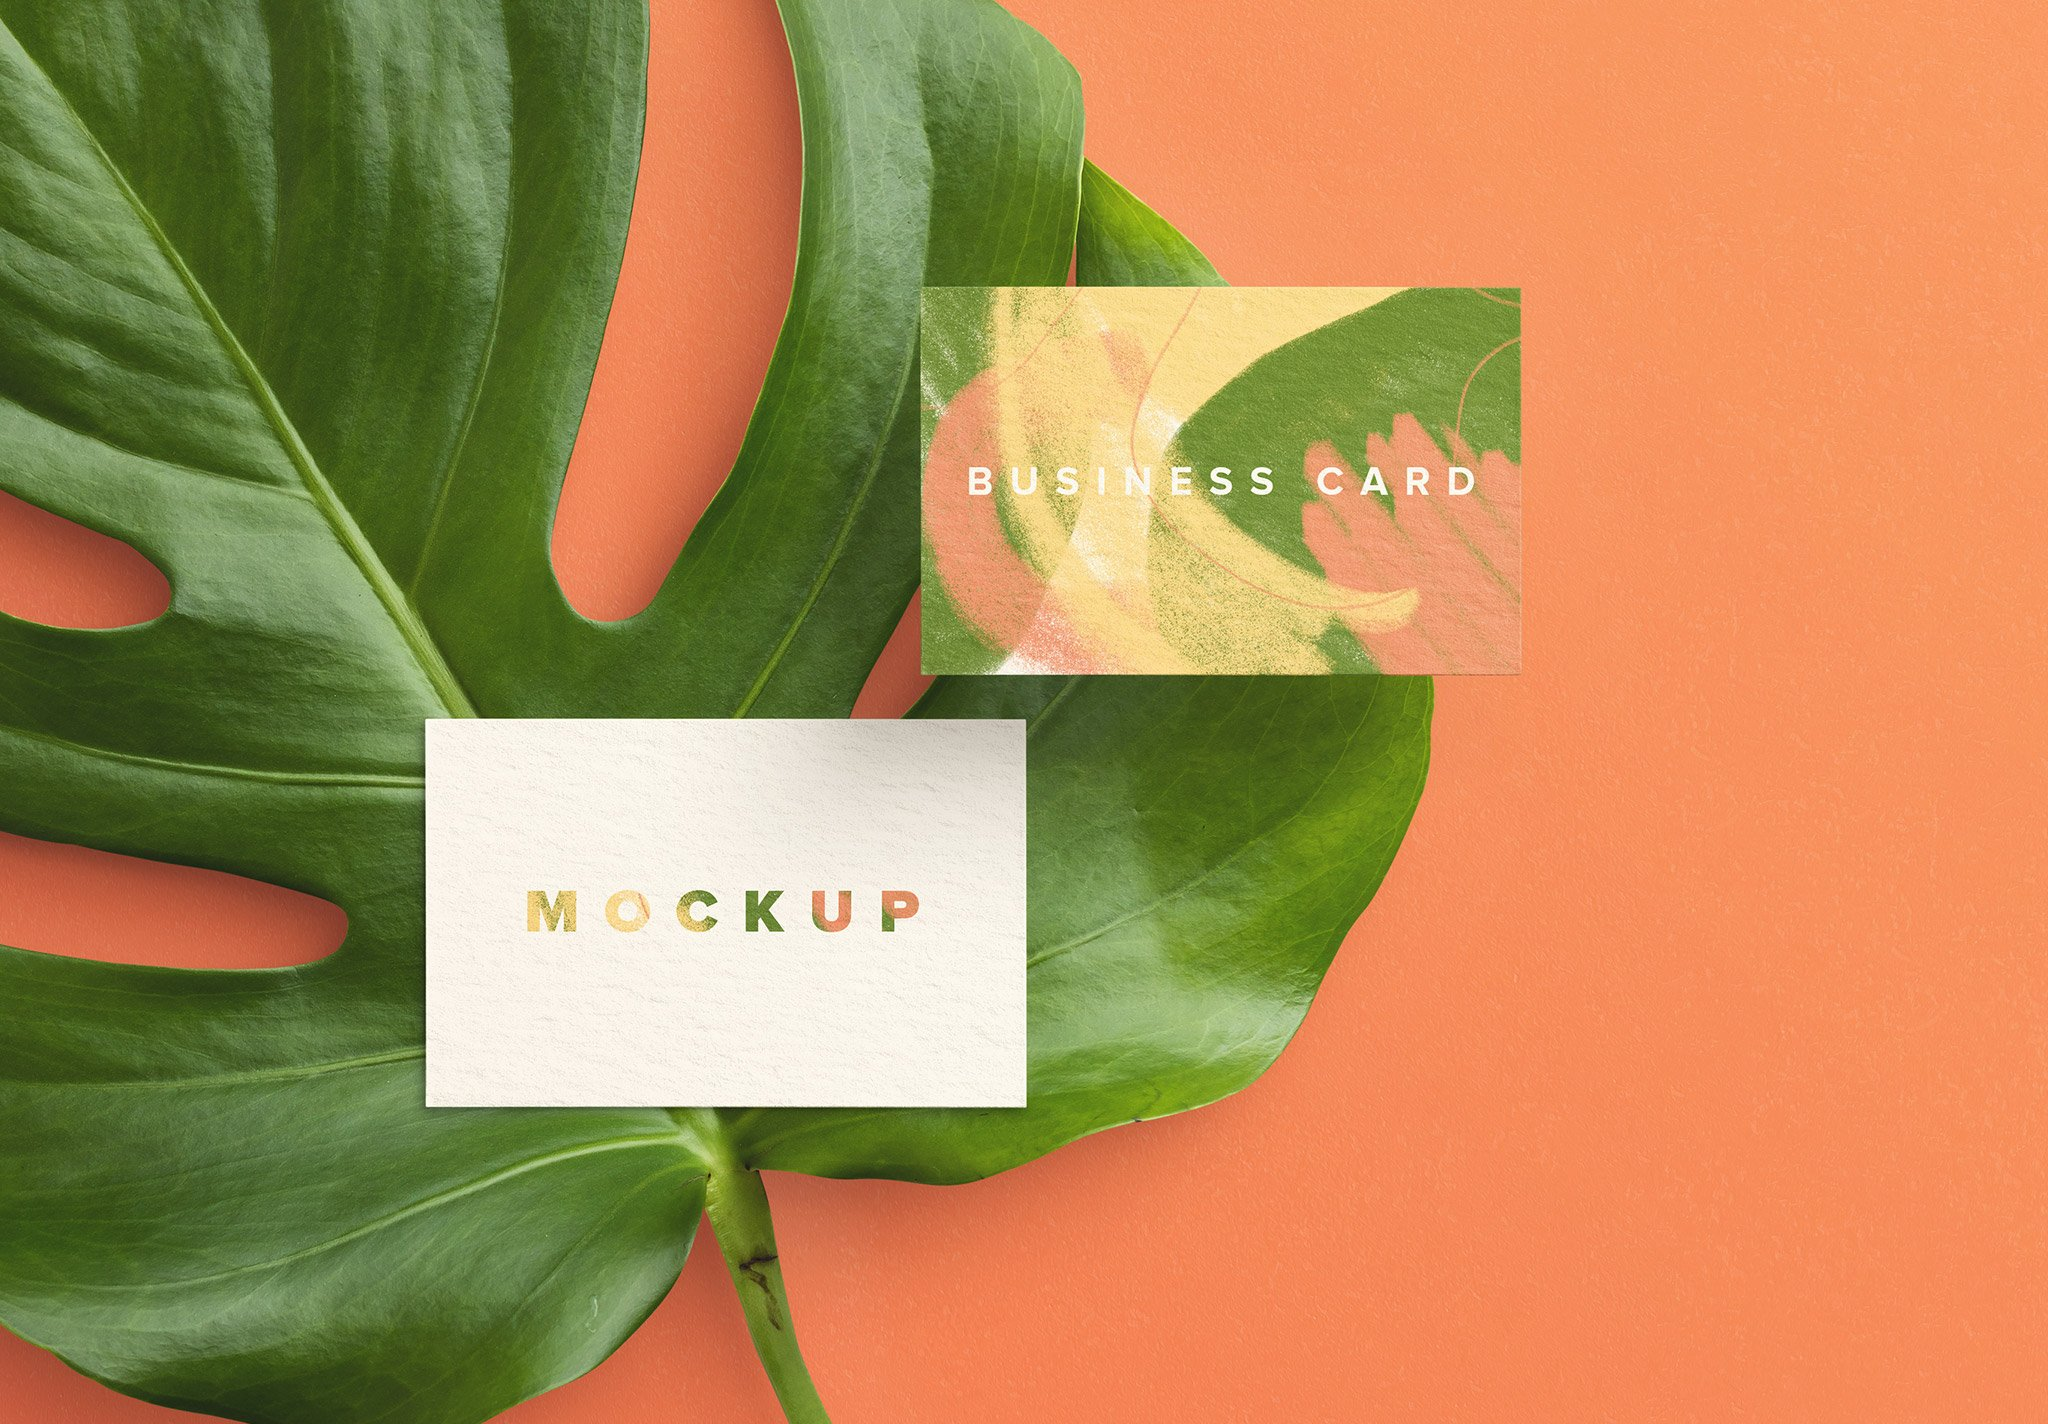 business card monstera plant image03